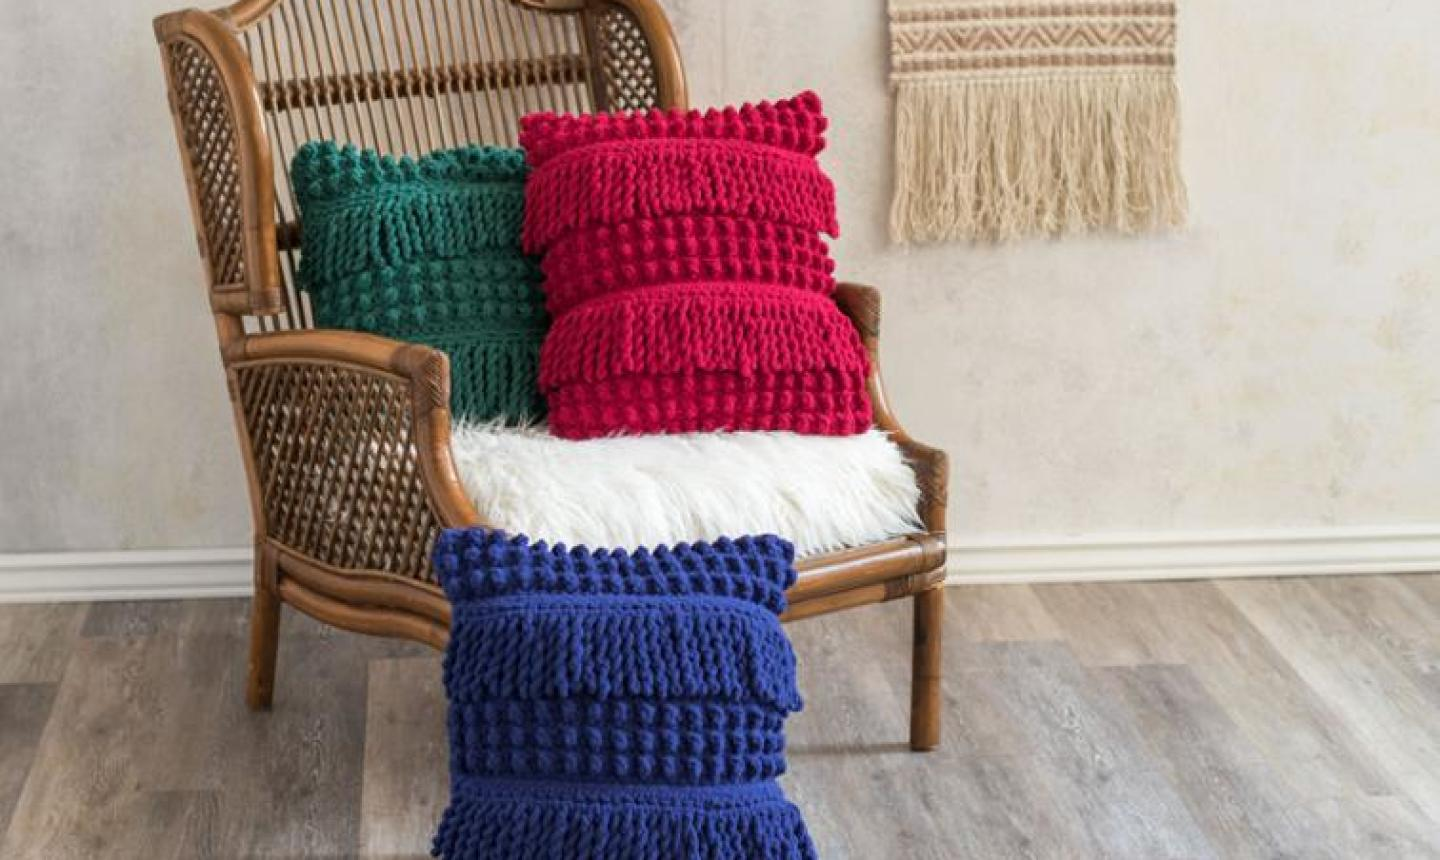 Crochet Pillow Covers That Fit And Function Craftsy